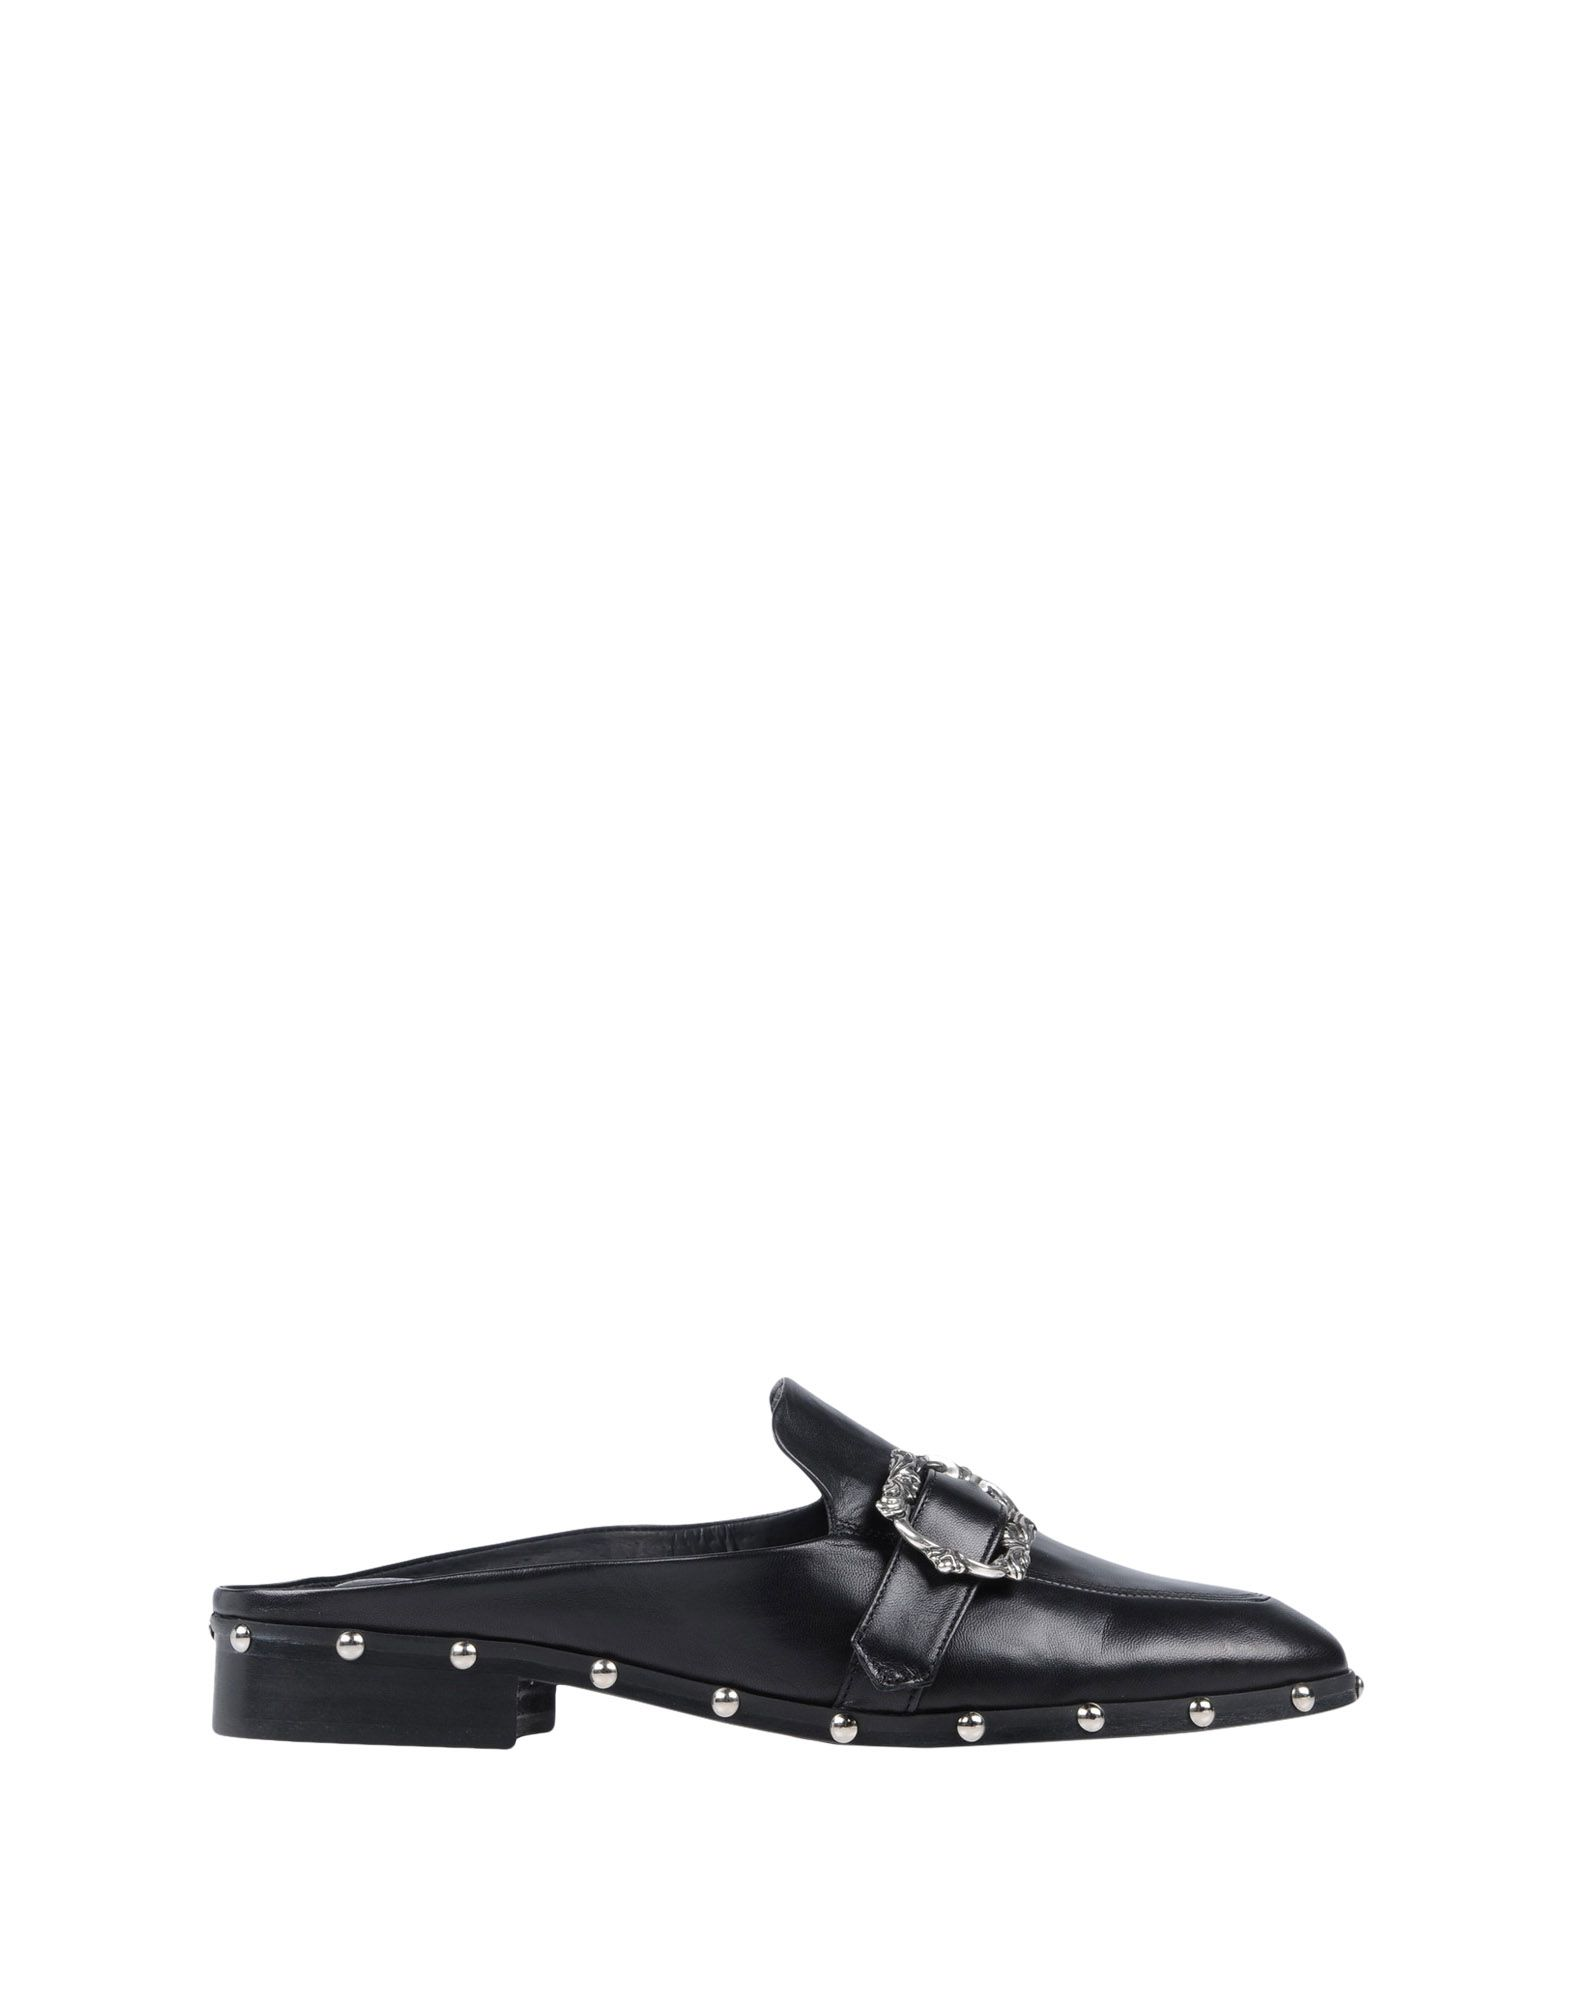 Mules The Kooples Chaussures - Femme - Mules The Kooples sur